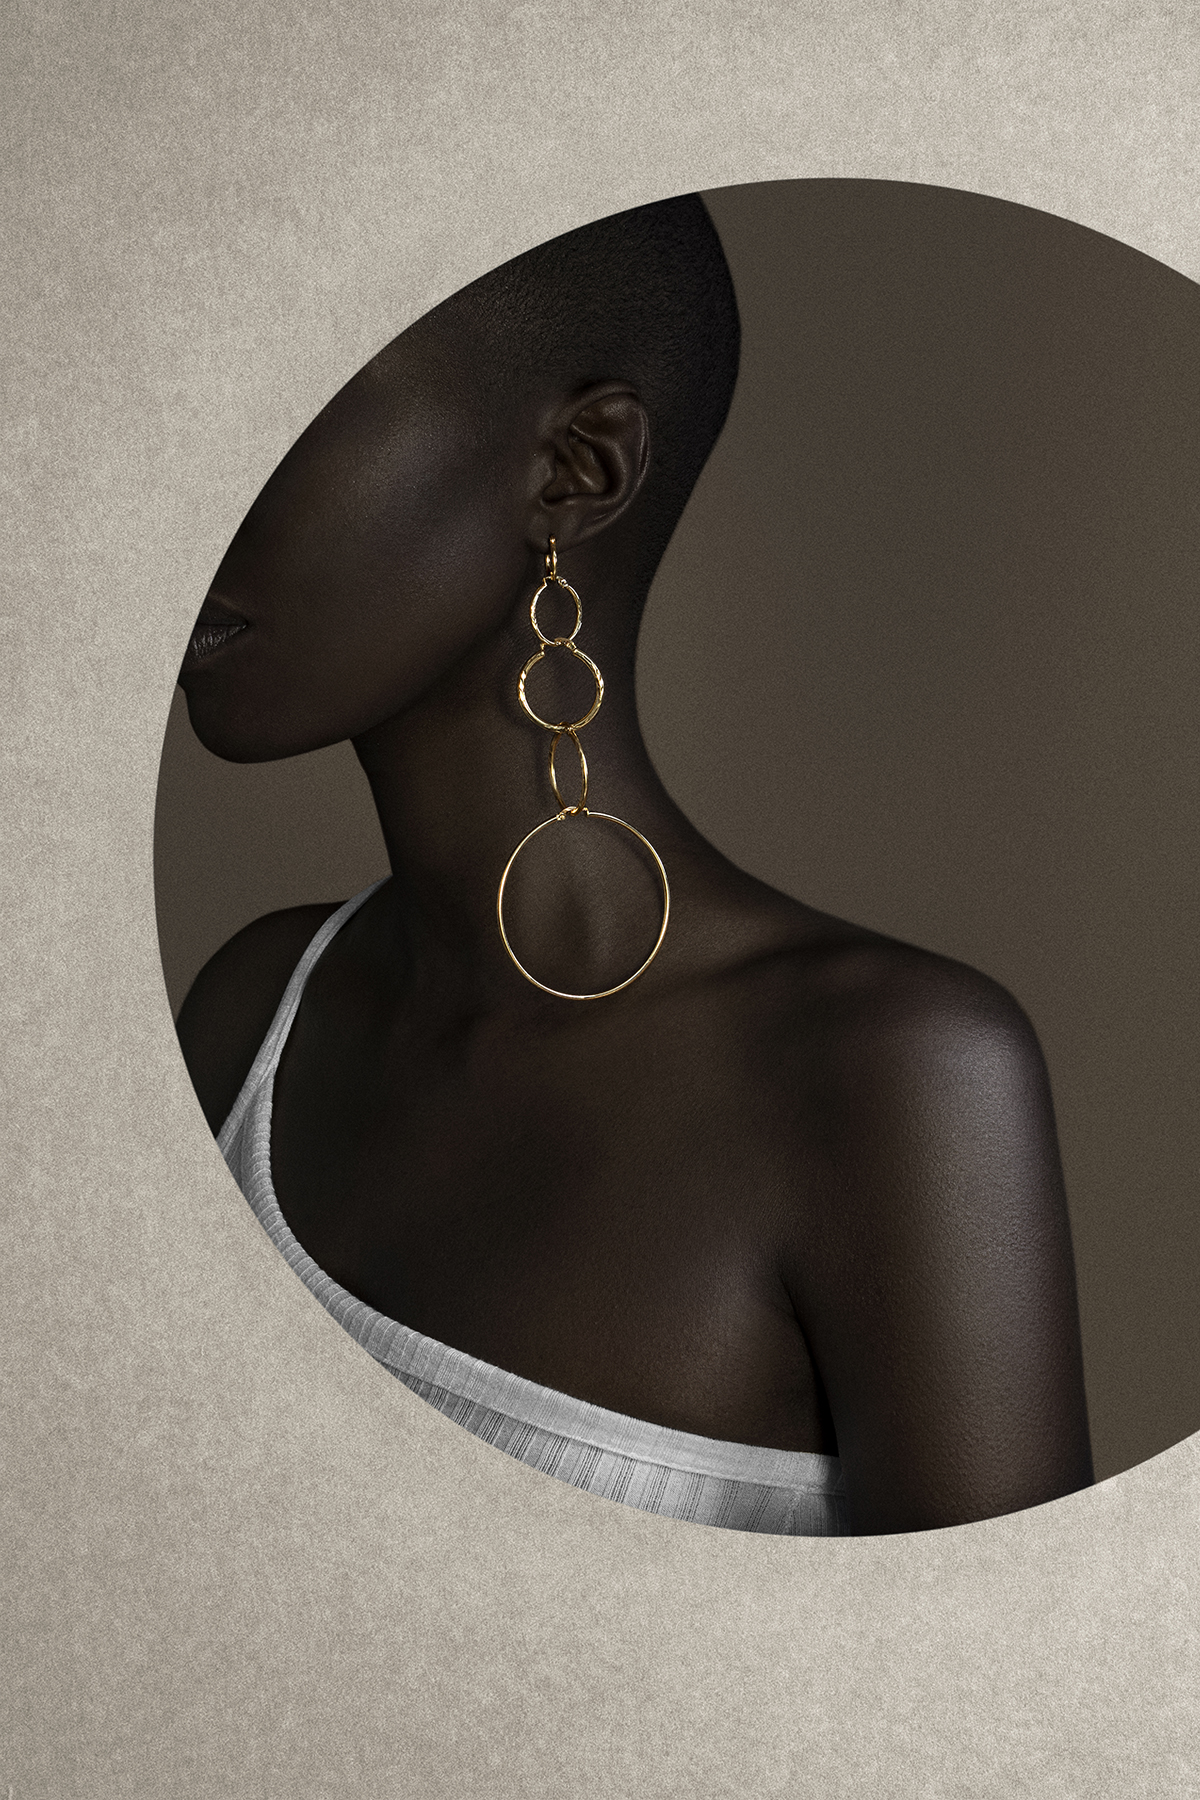 Giannina oteto for nashira arno jewerly nyc latin american designer from dominican republic modern sculptural statement gold jewelry earrings hoops art director raylin diaz.jpg